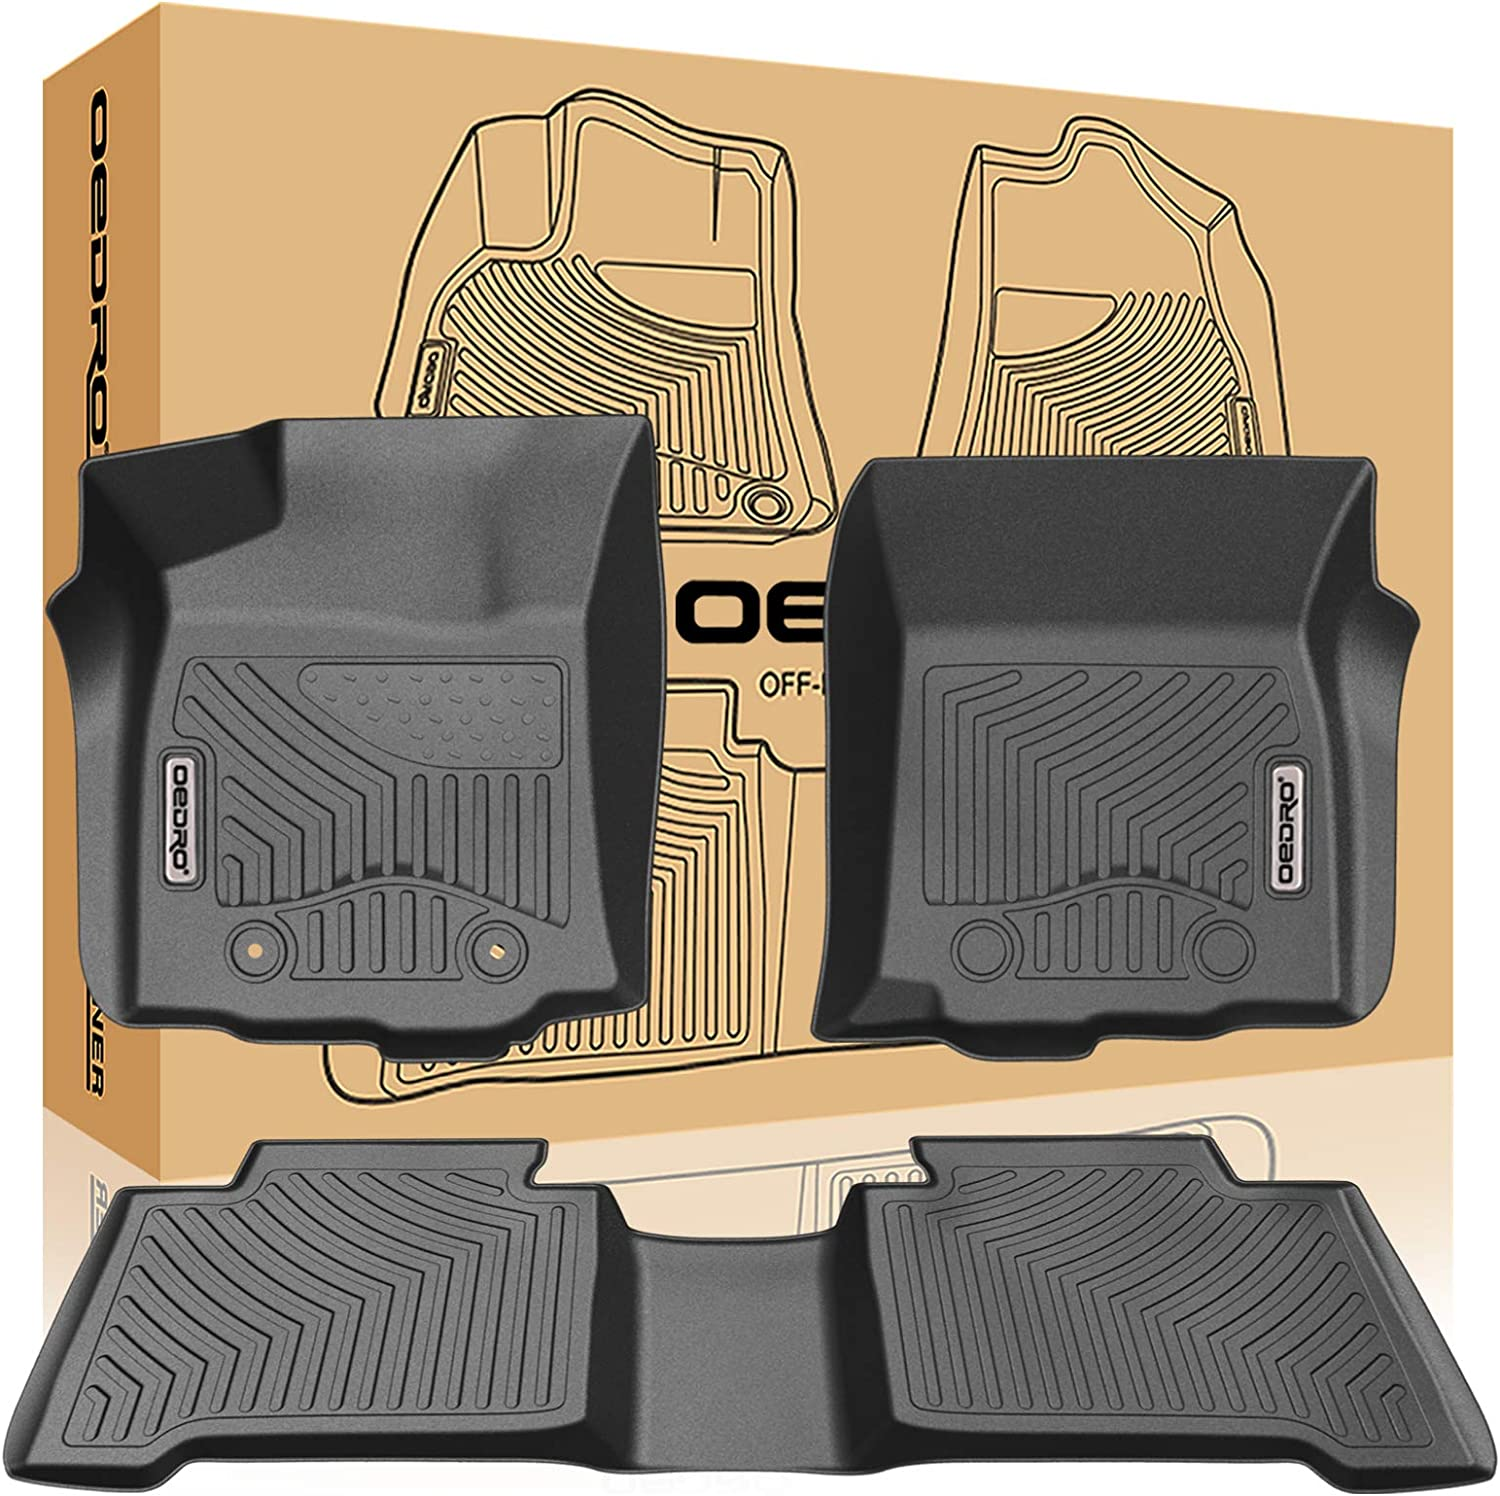 2006 GGBAILEY D4492A-S2B-BLK/_BR Custom Fit Car Mats for 2005 Passenger /& Rear Floor 2007 2008 Chevrolet Uplander Black with Red Edging Driver